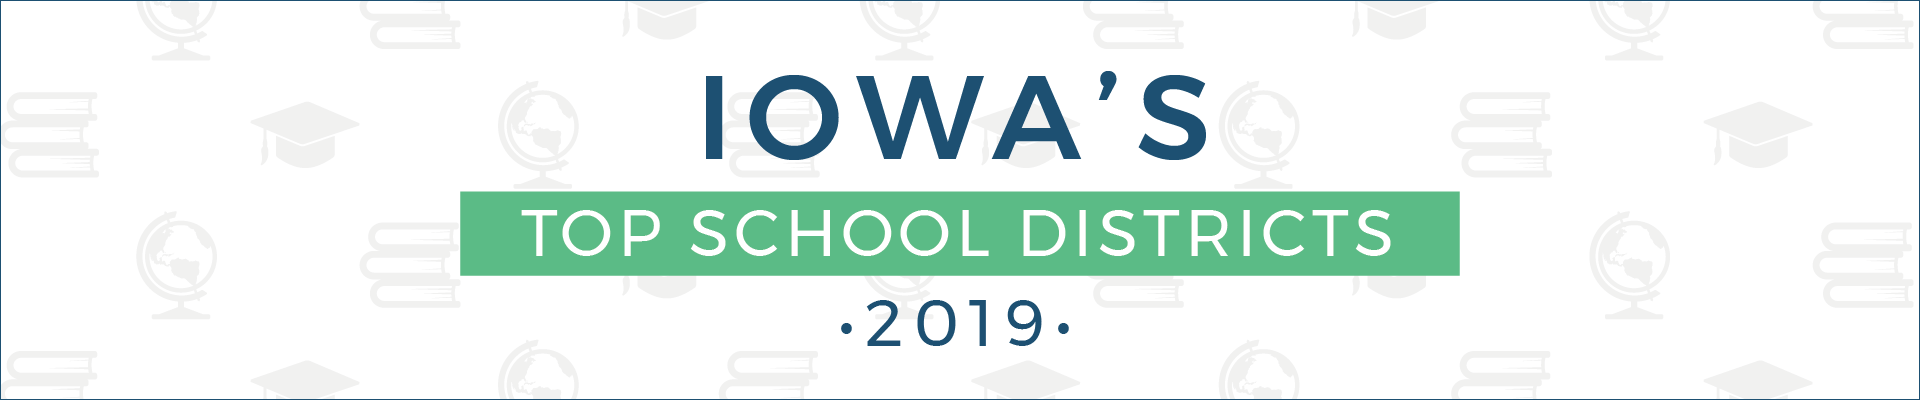 top school districts, 2019 - iowa - banner